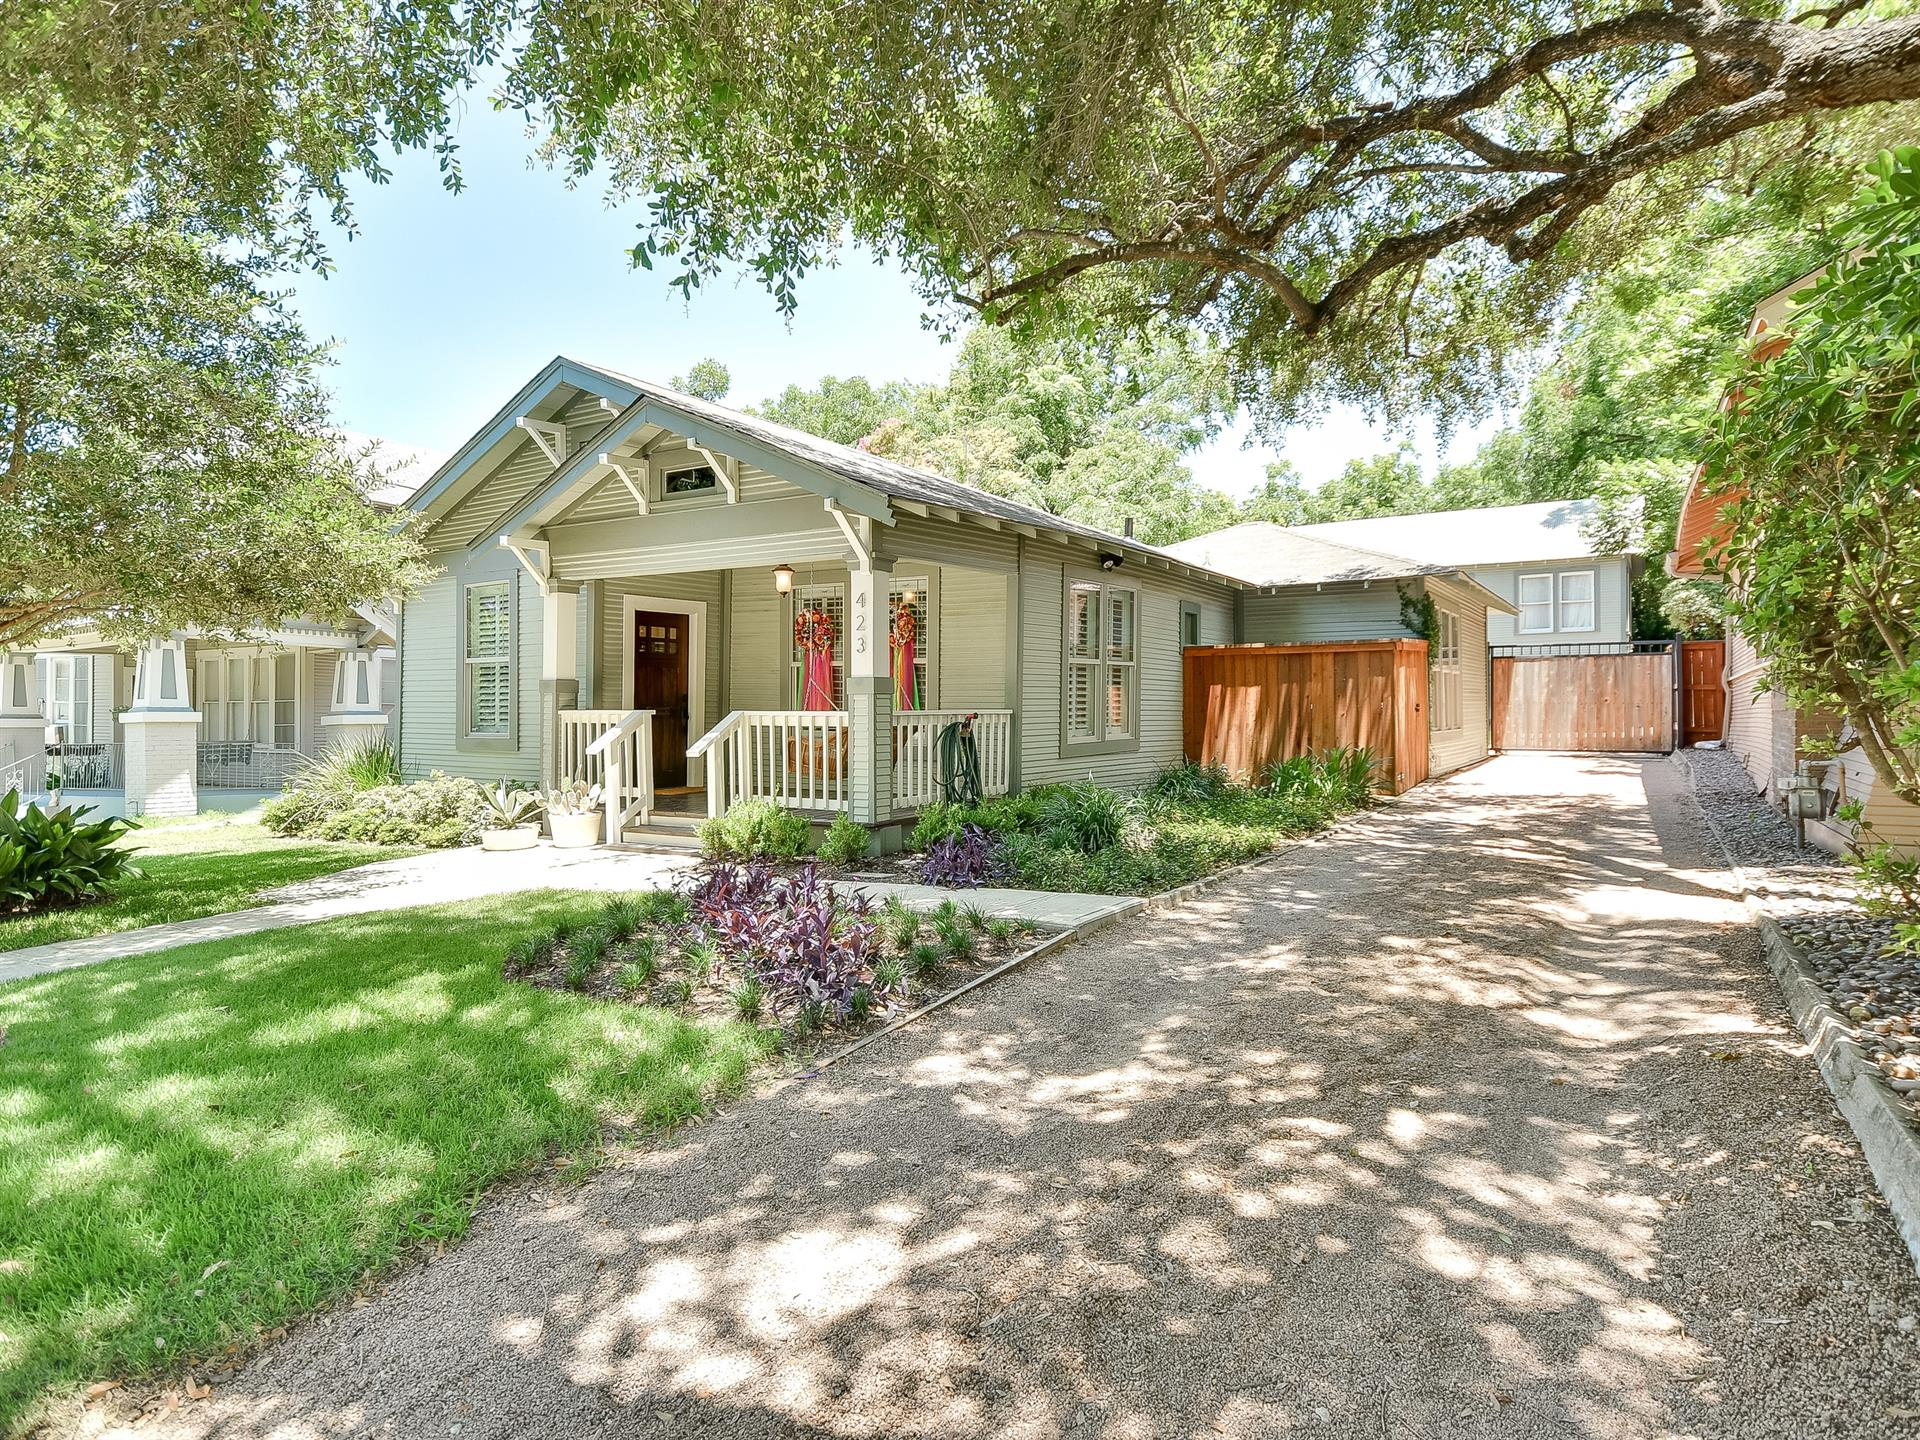 Additional photo for property listing at 423 Queen Anne Ct 423 Queen Anne Ct San Antonio, Texas 78209 Estados Unidos